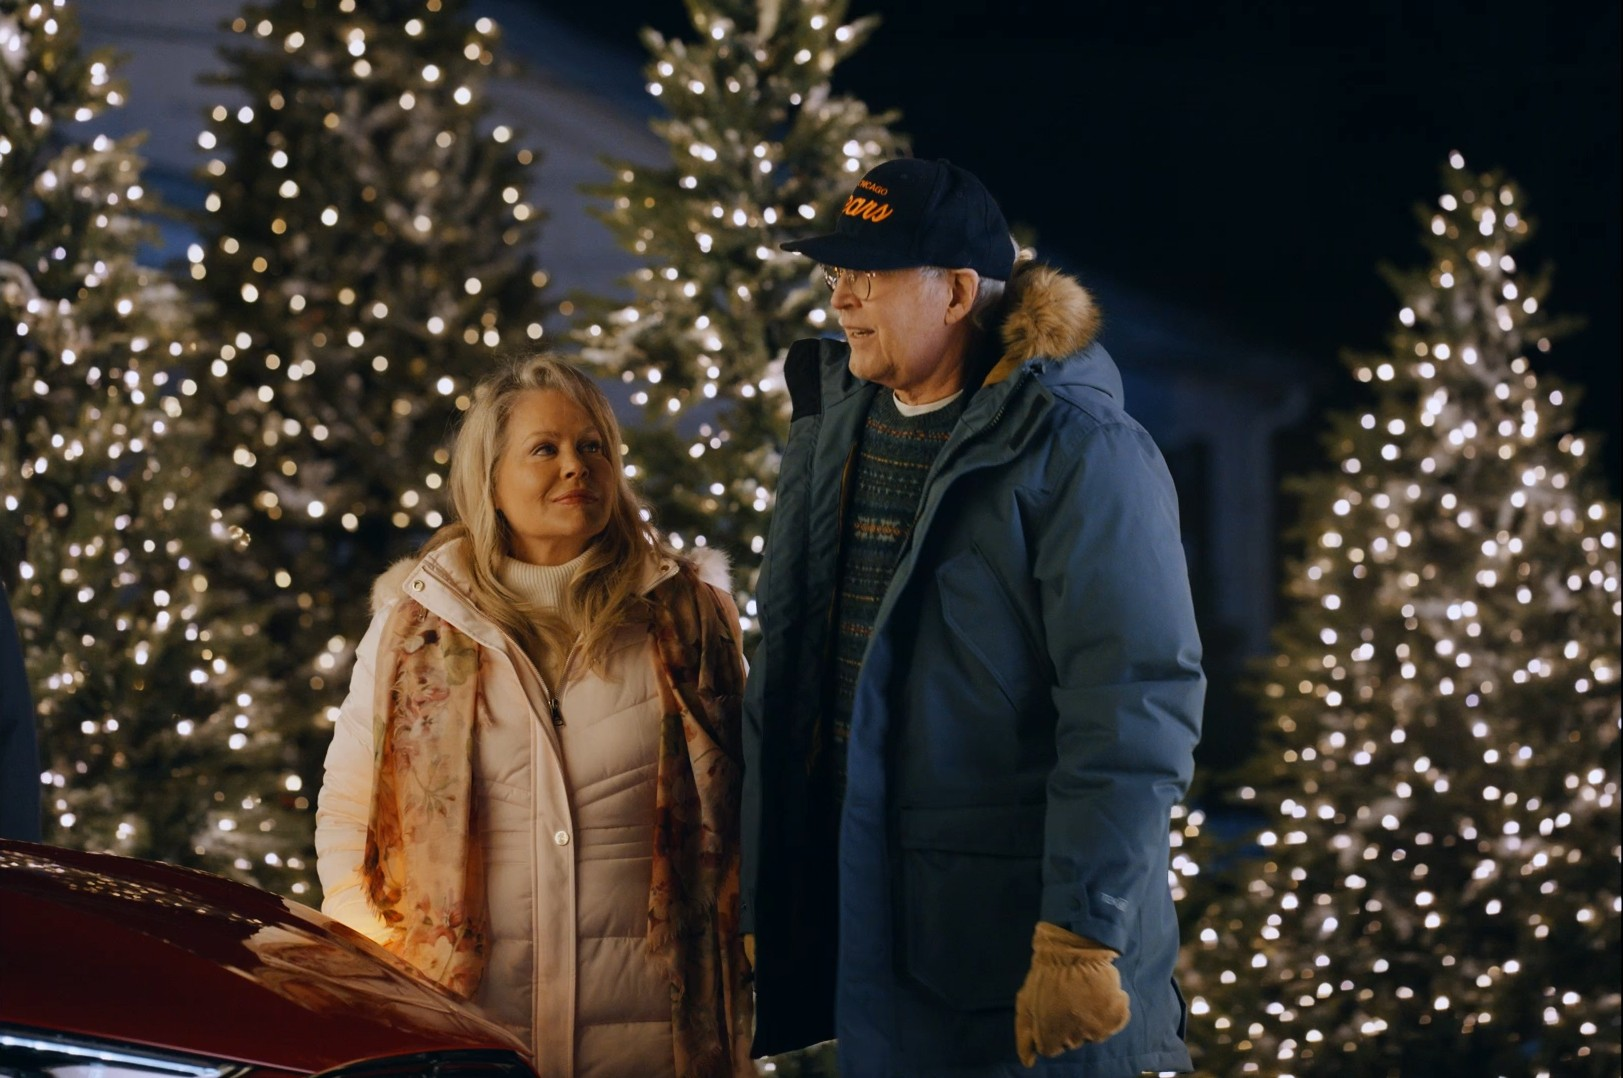 Christmas Car Commercial 2021 Chevy Chase And Beverly D Angelo Recreate Christmas Vacation Scene With Mustang Mach E Carscoops